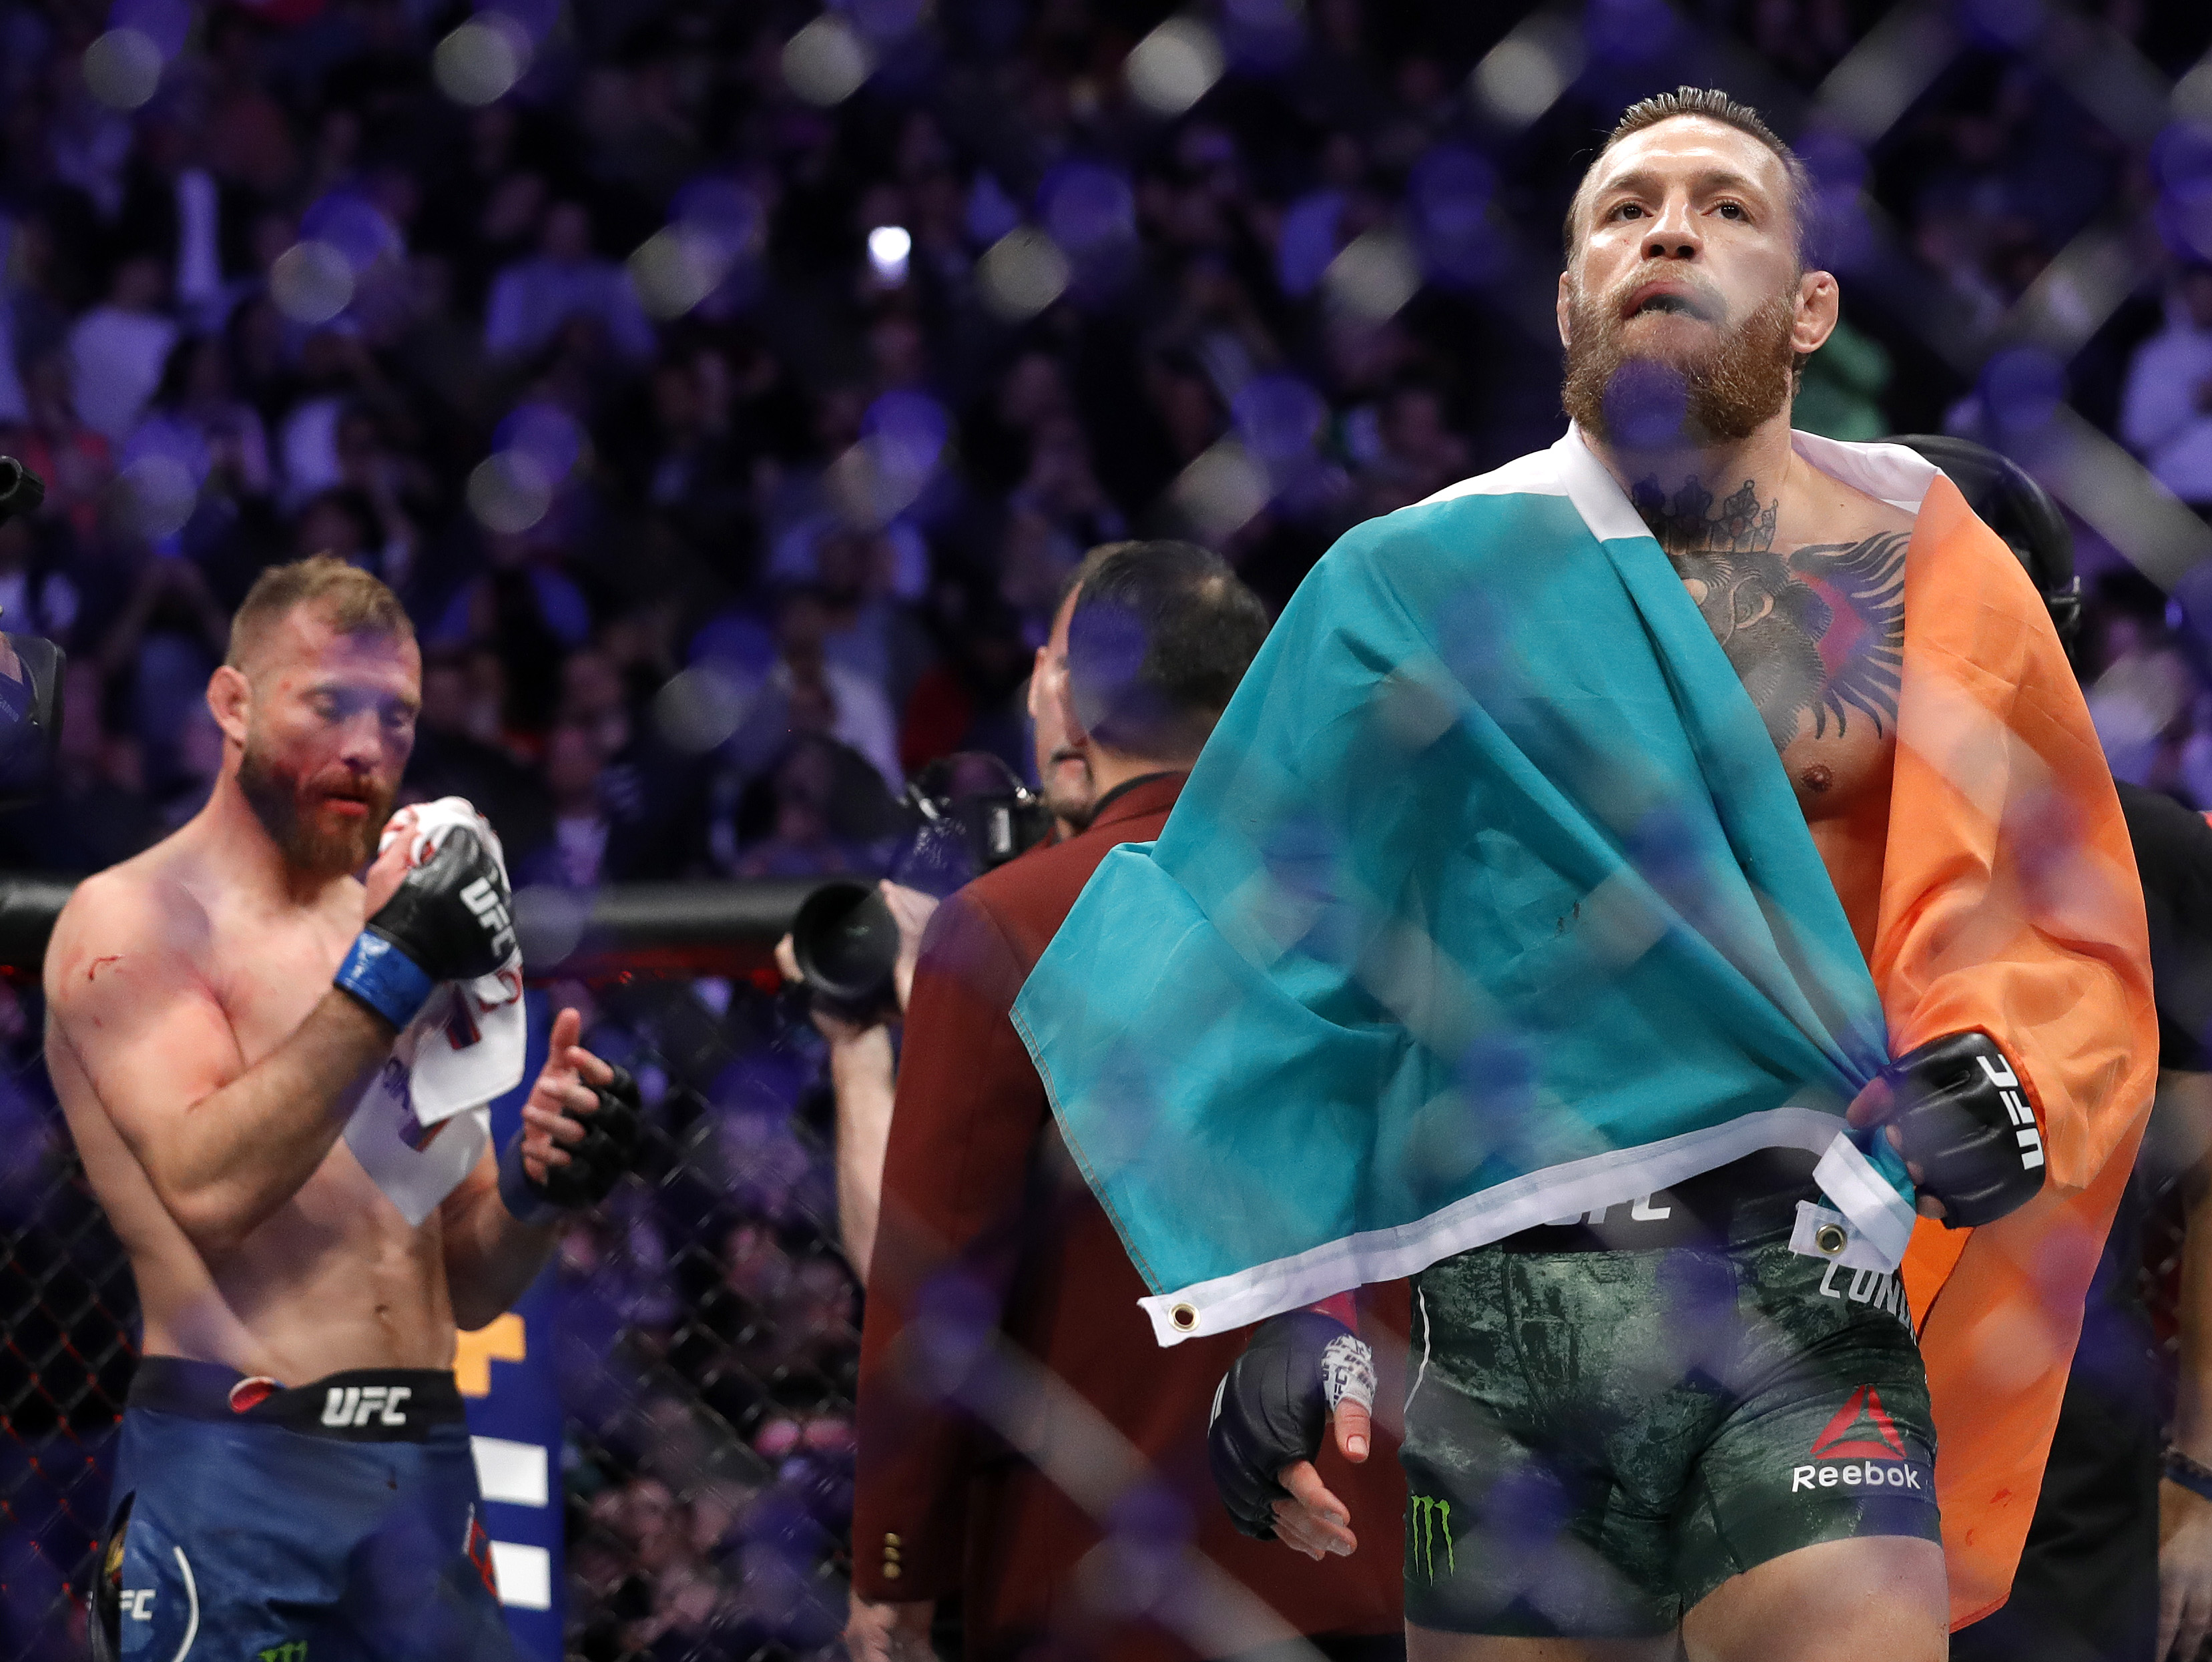 Conor McGregor v Donald Cerrone